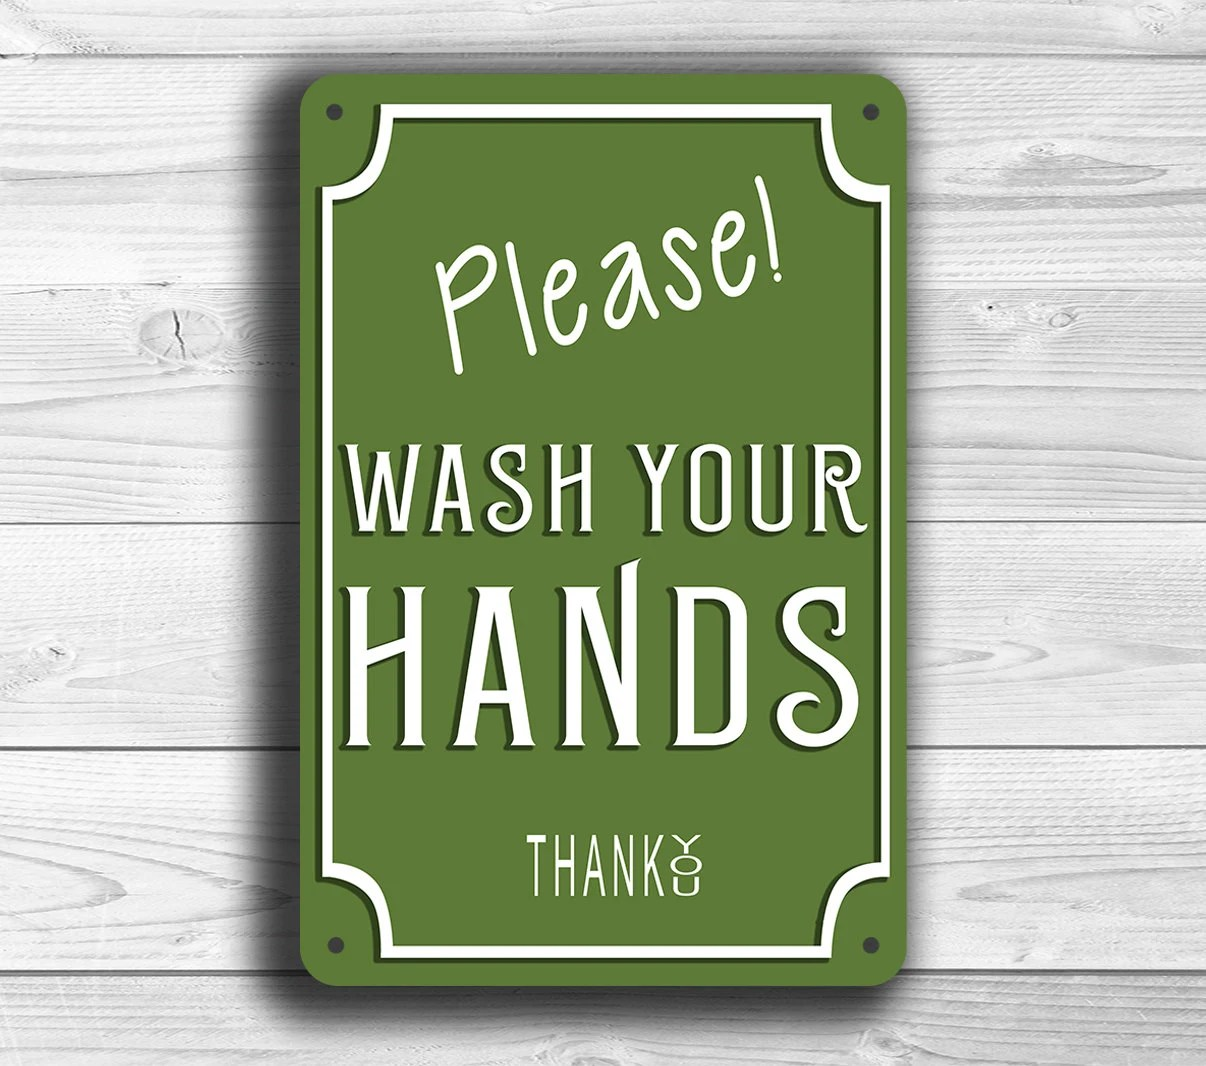 Wash Your Hands Sign Please Wash Your Hands Sign Classic